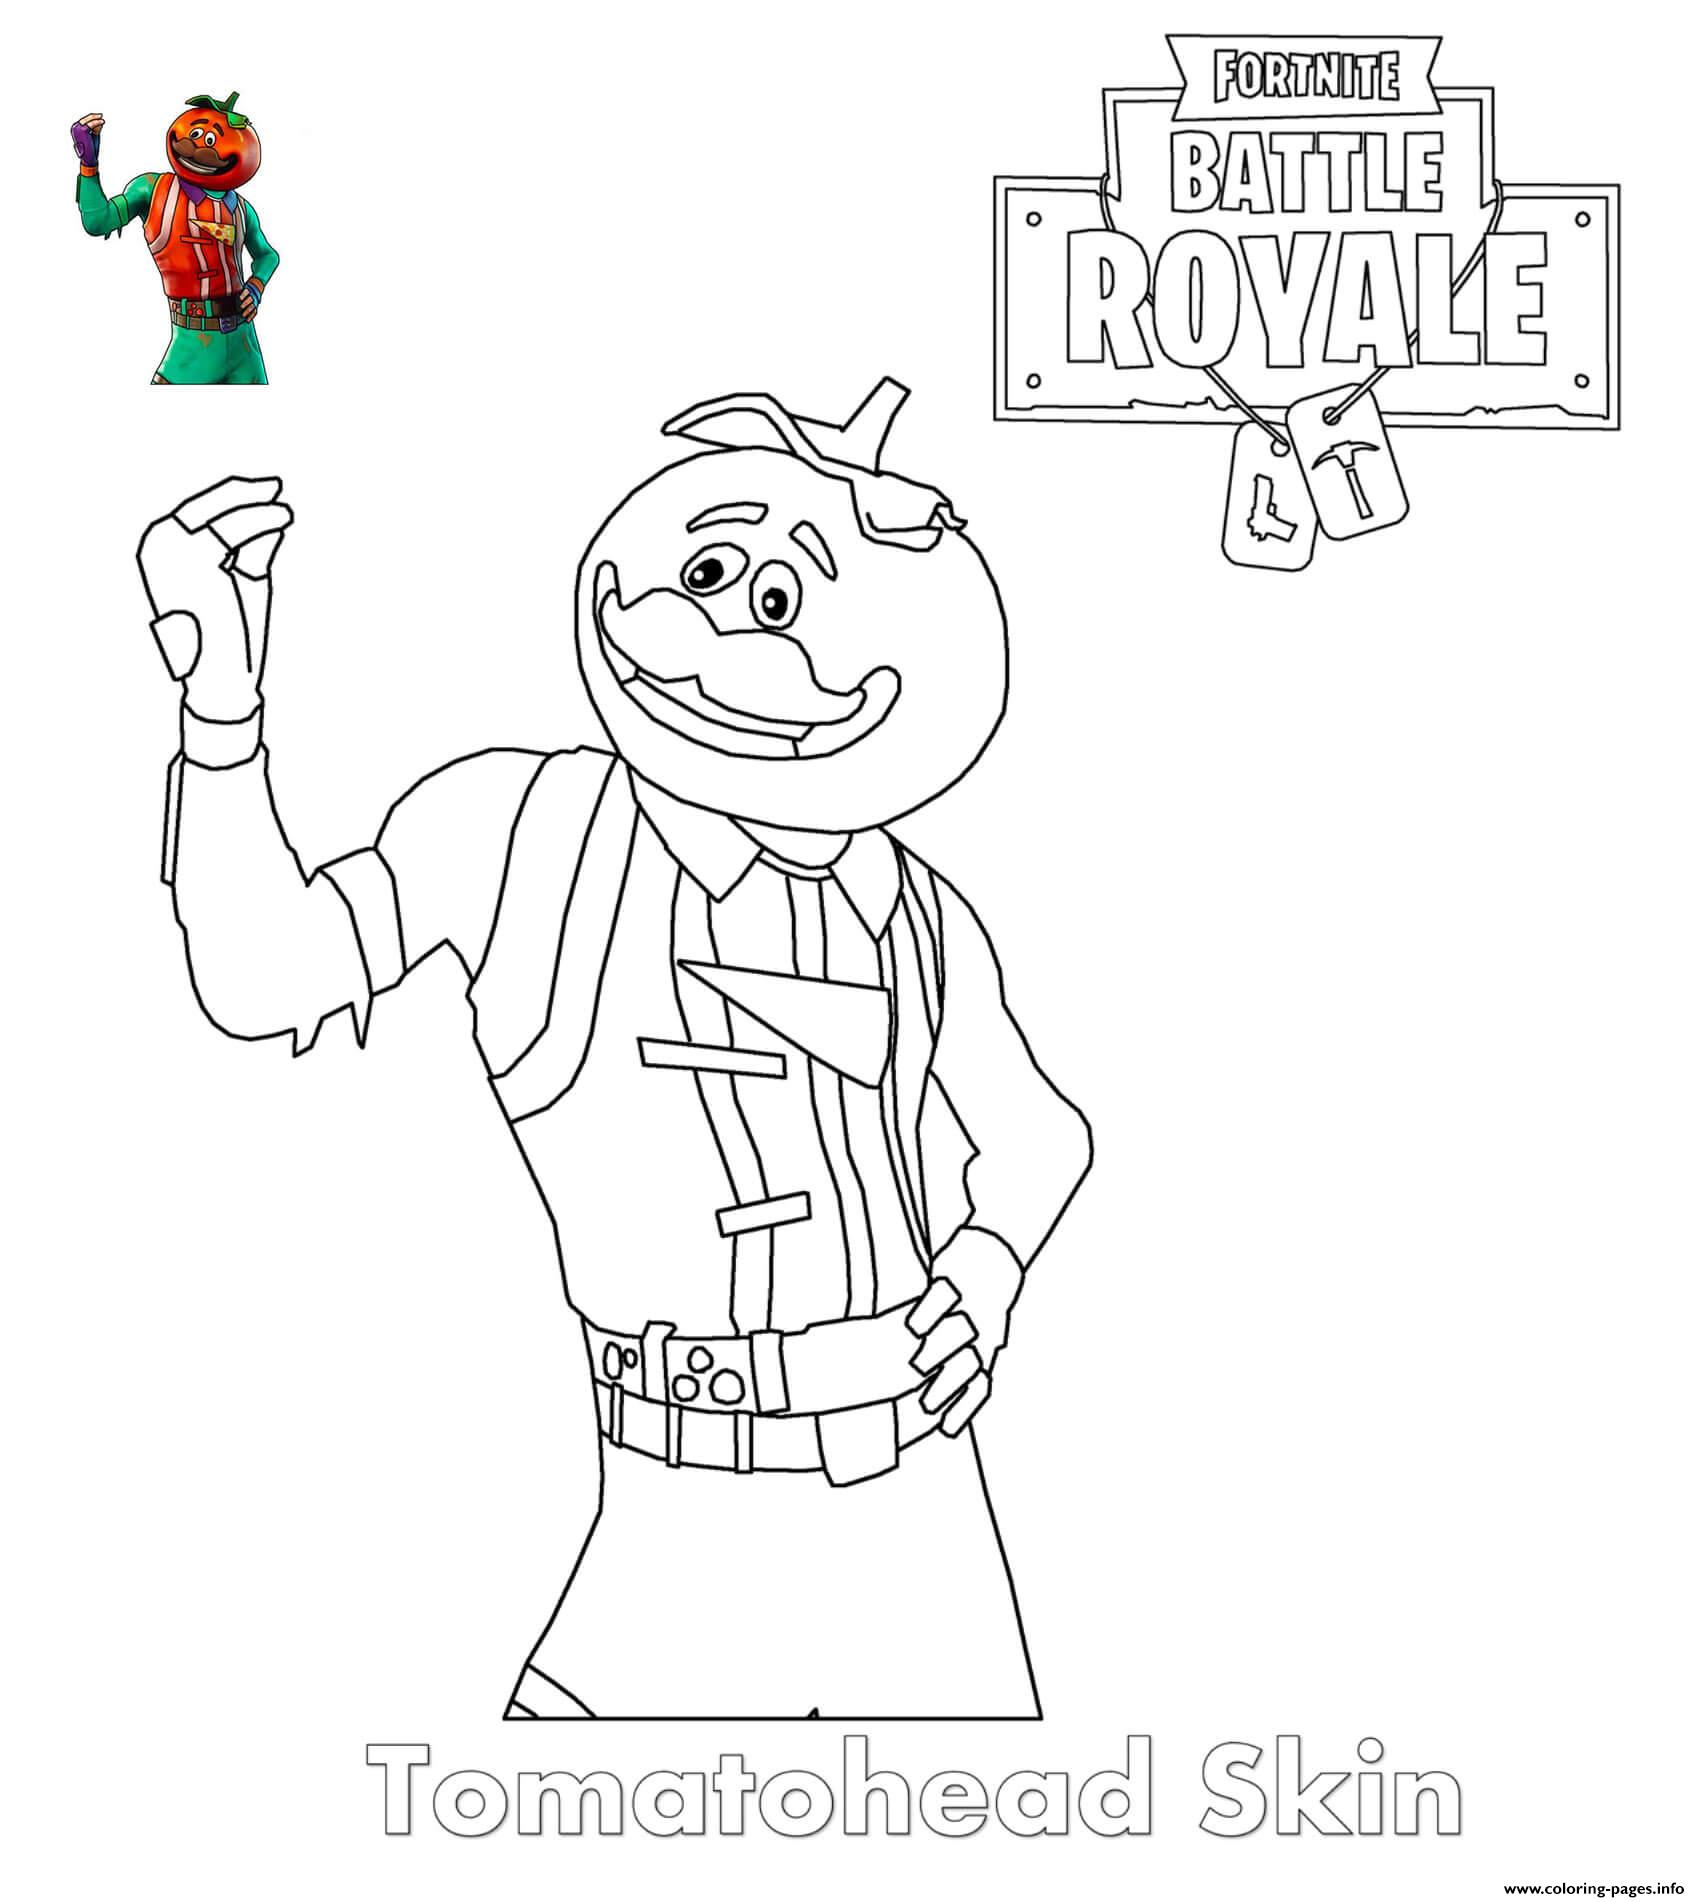 Coloring Pages Of Fortnite Skins